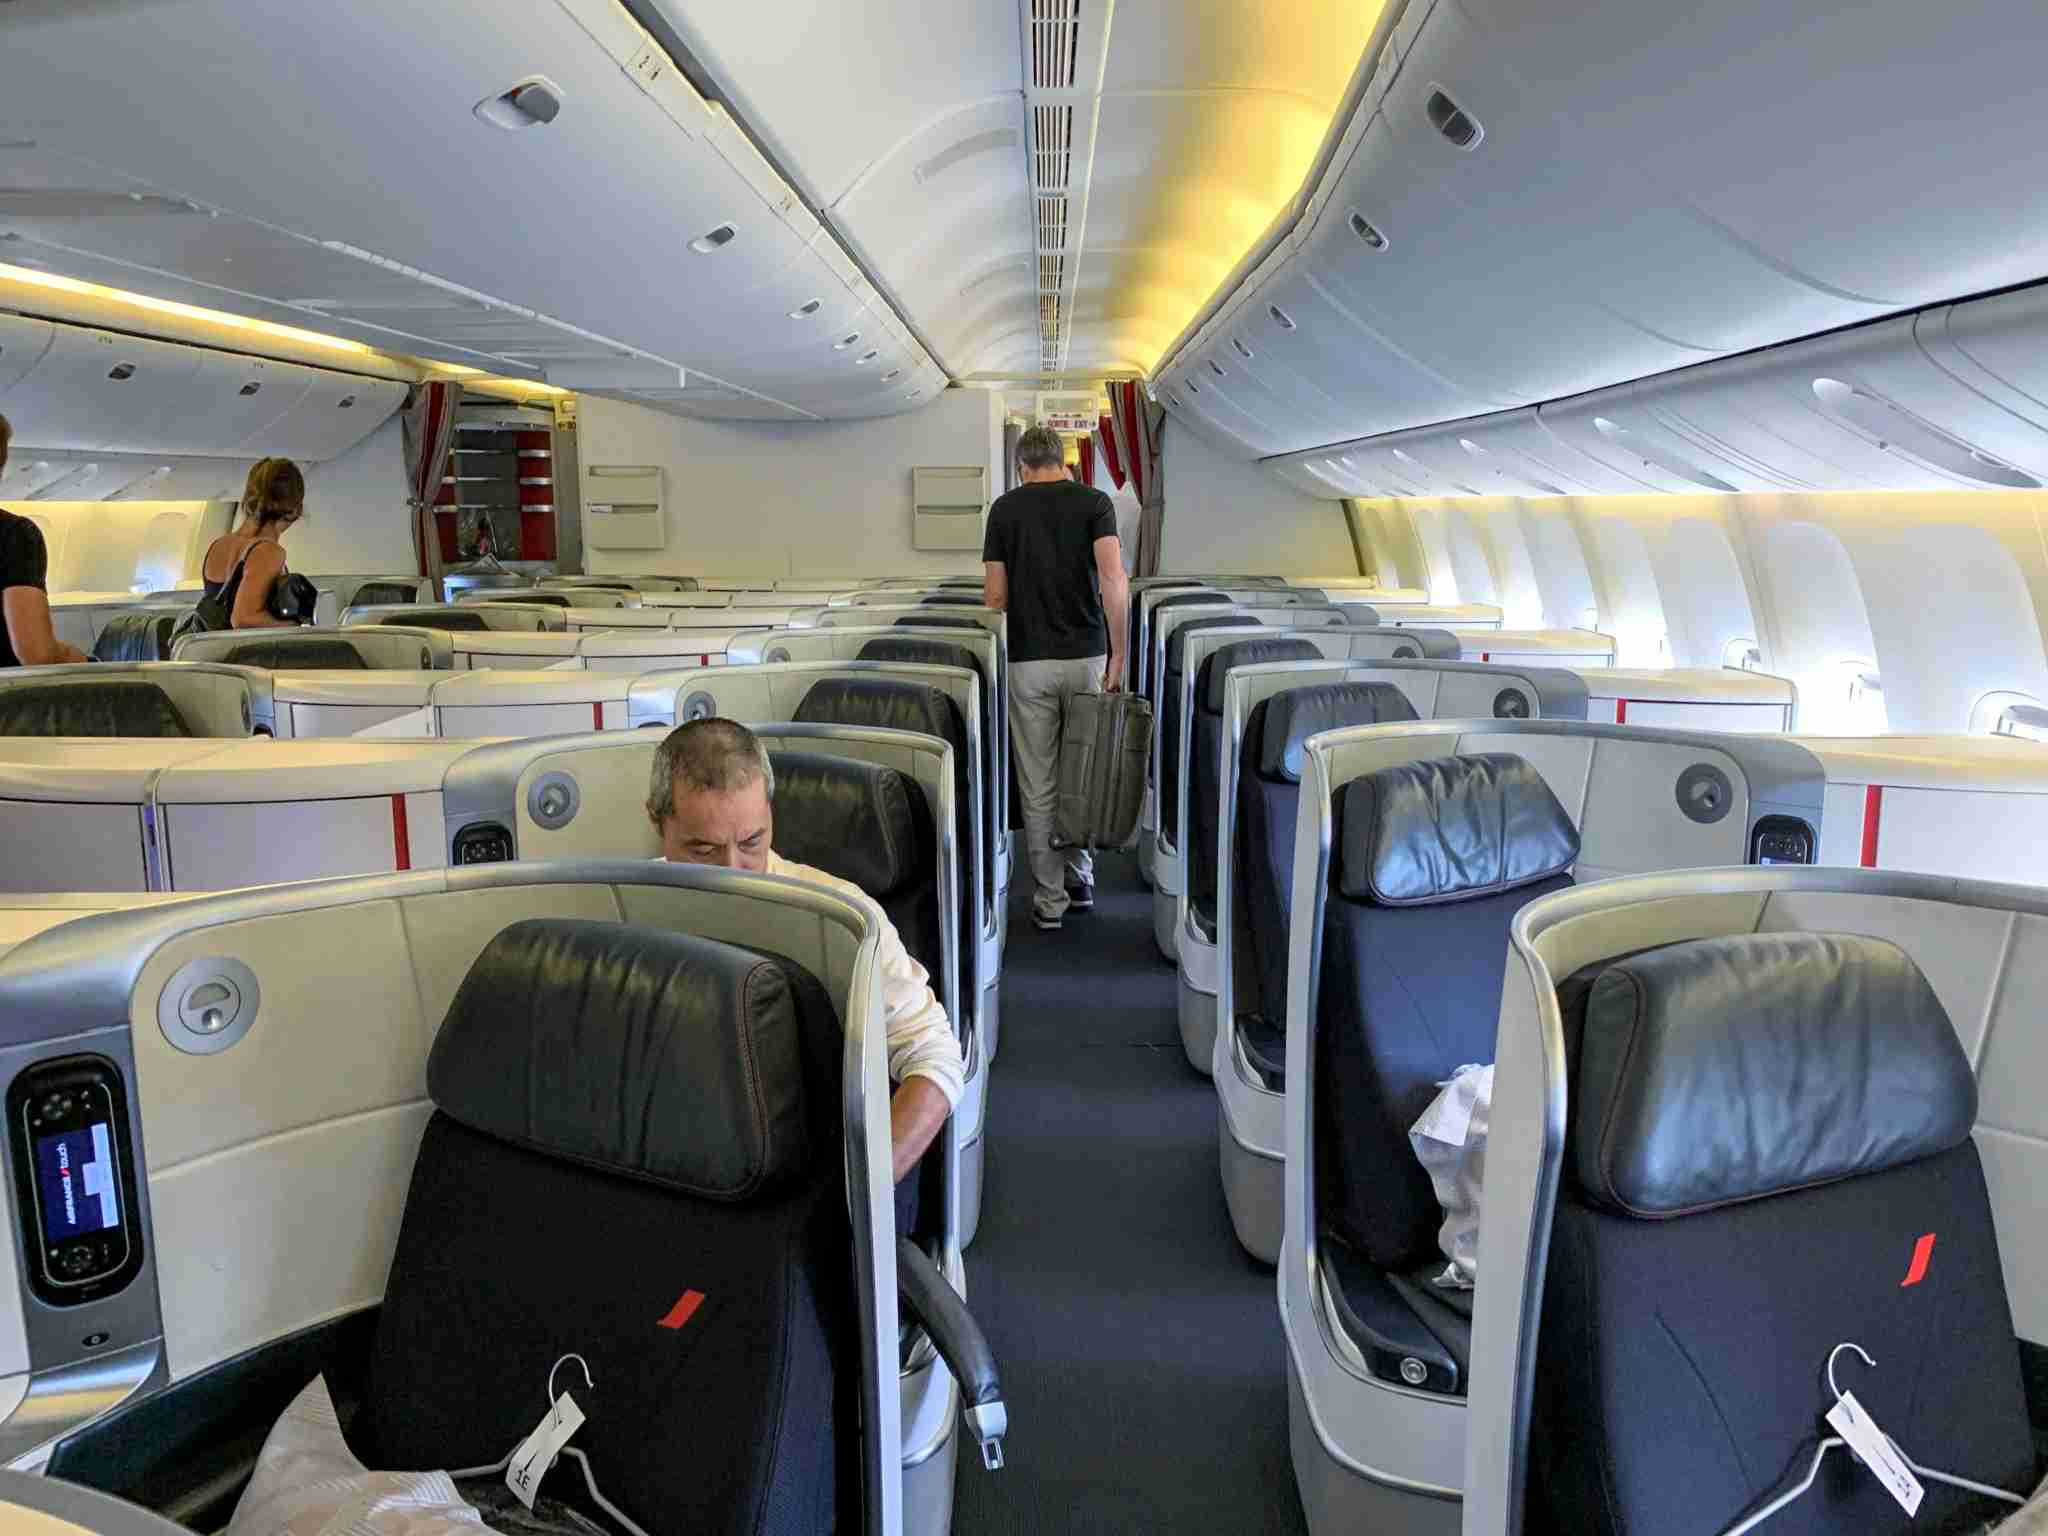 Air France Boeing 777 Forward Business Class Cabin